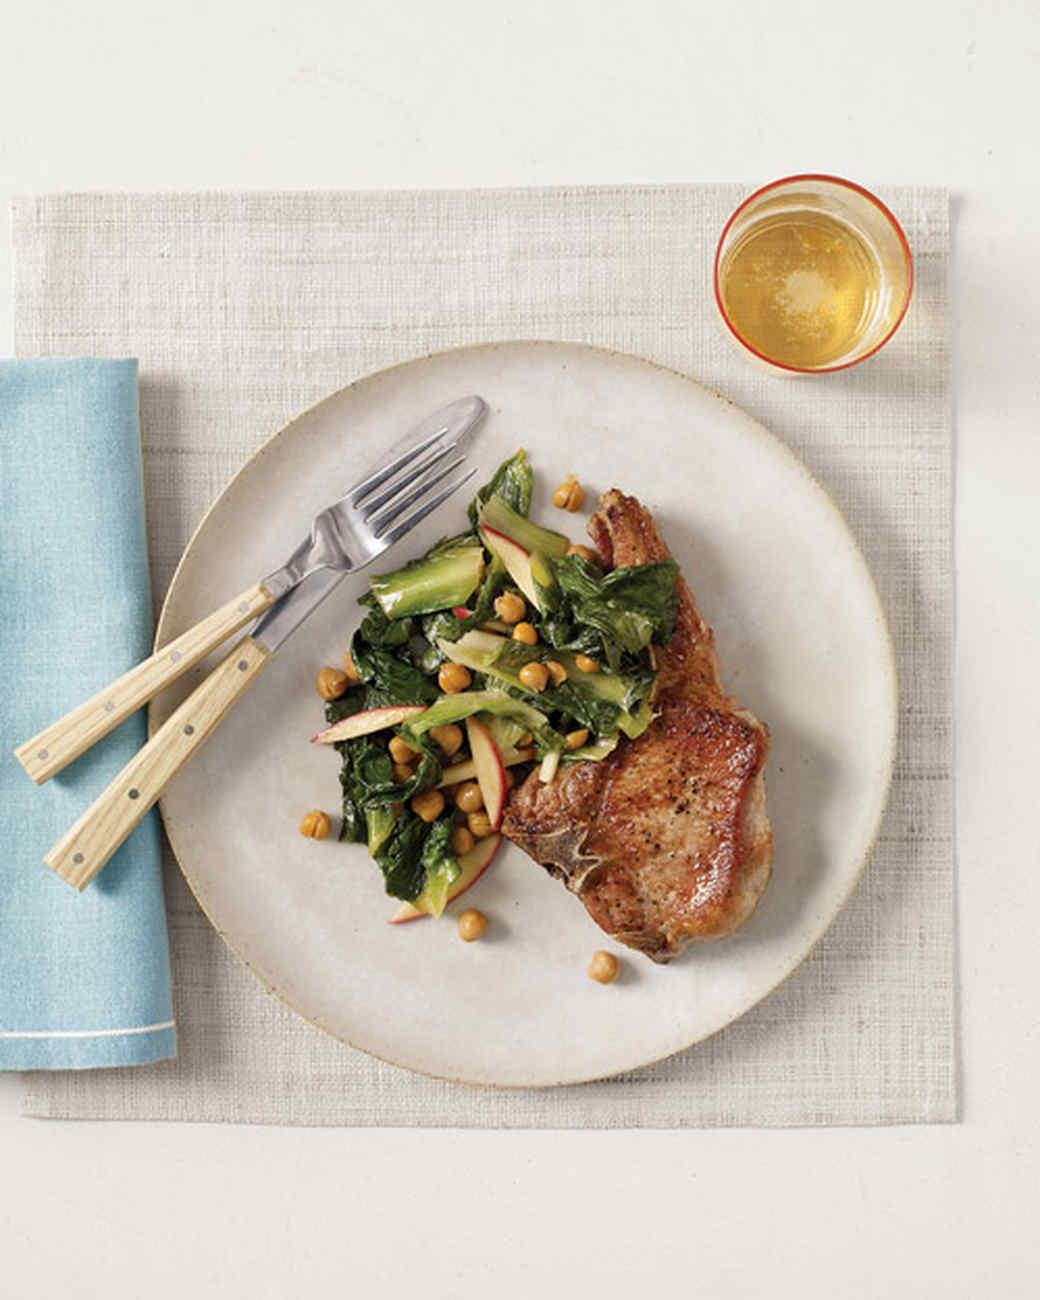 Pork Chops with Sauteed Chickpeas, Escarole, and Apple